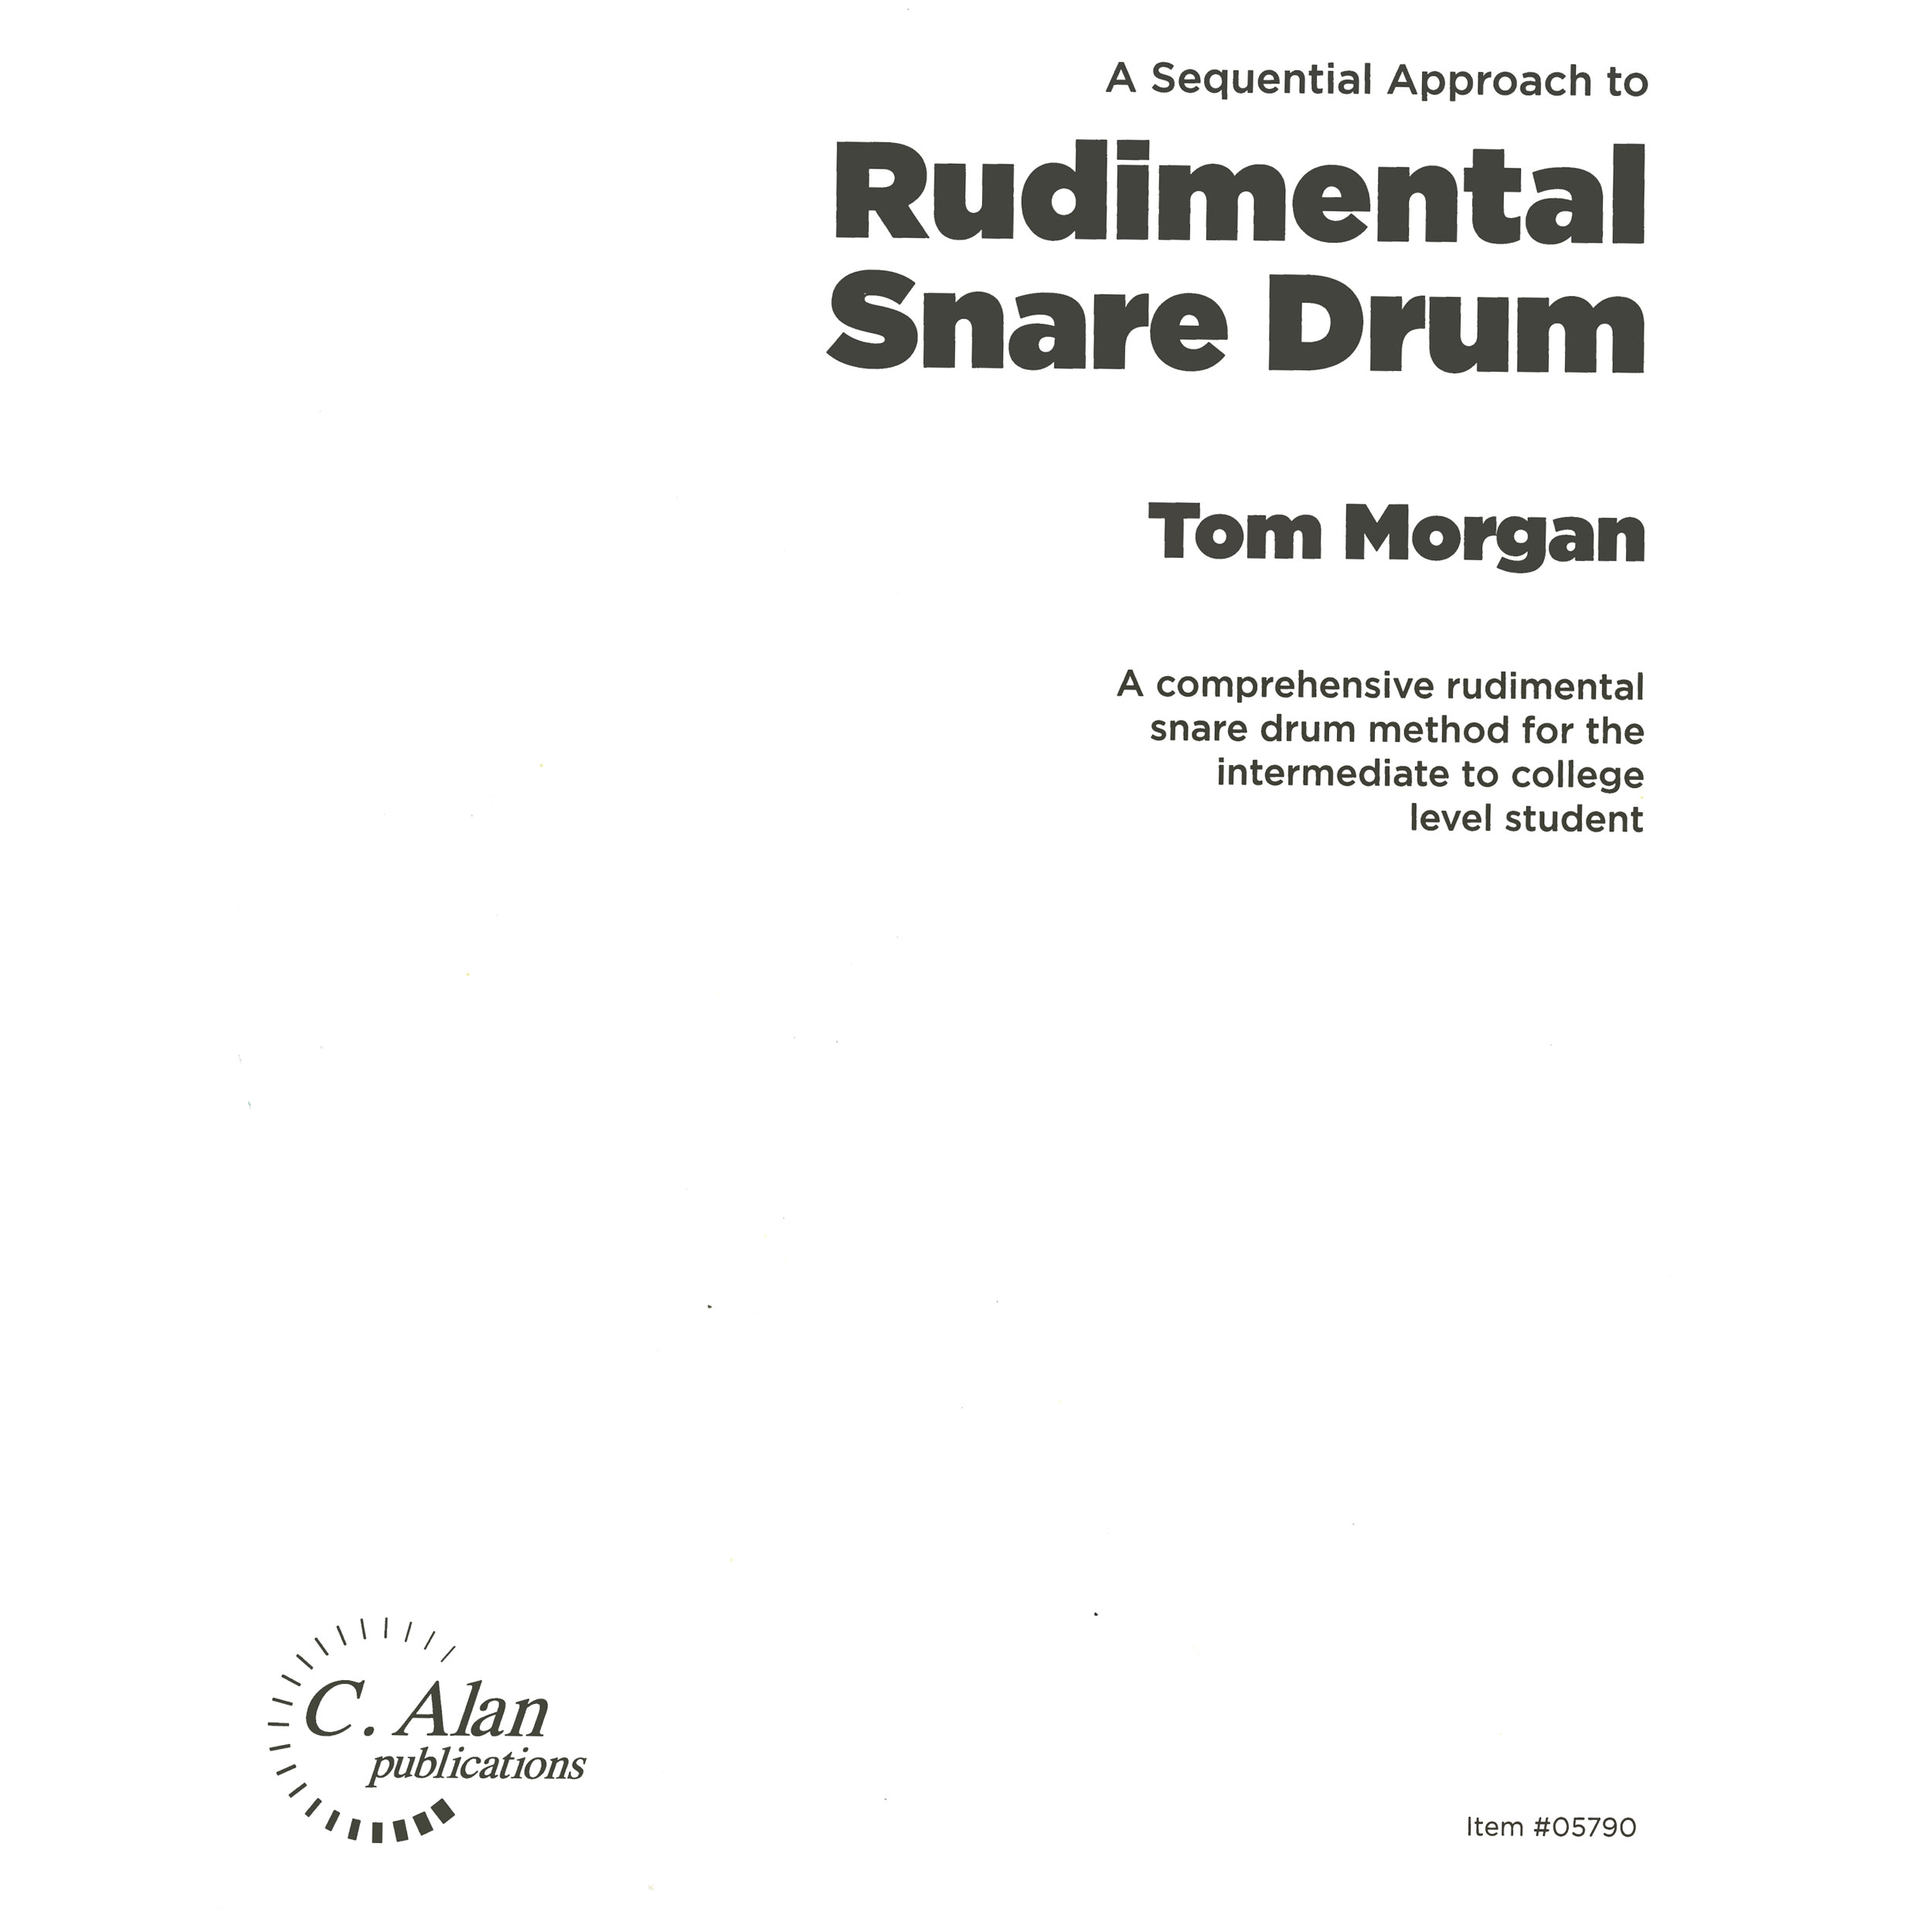 A Sequential Approach to Rudimental Snare Drum by Tom Morgan